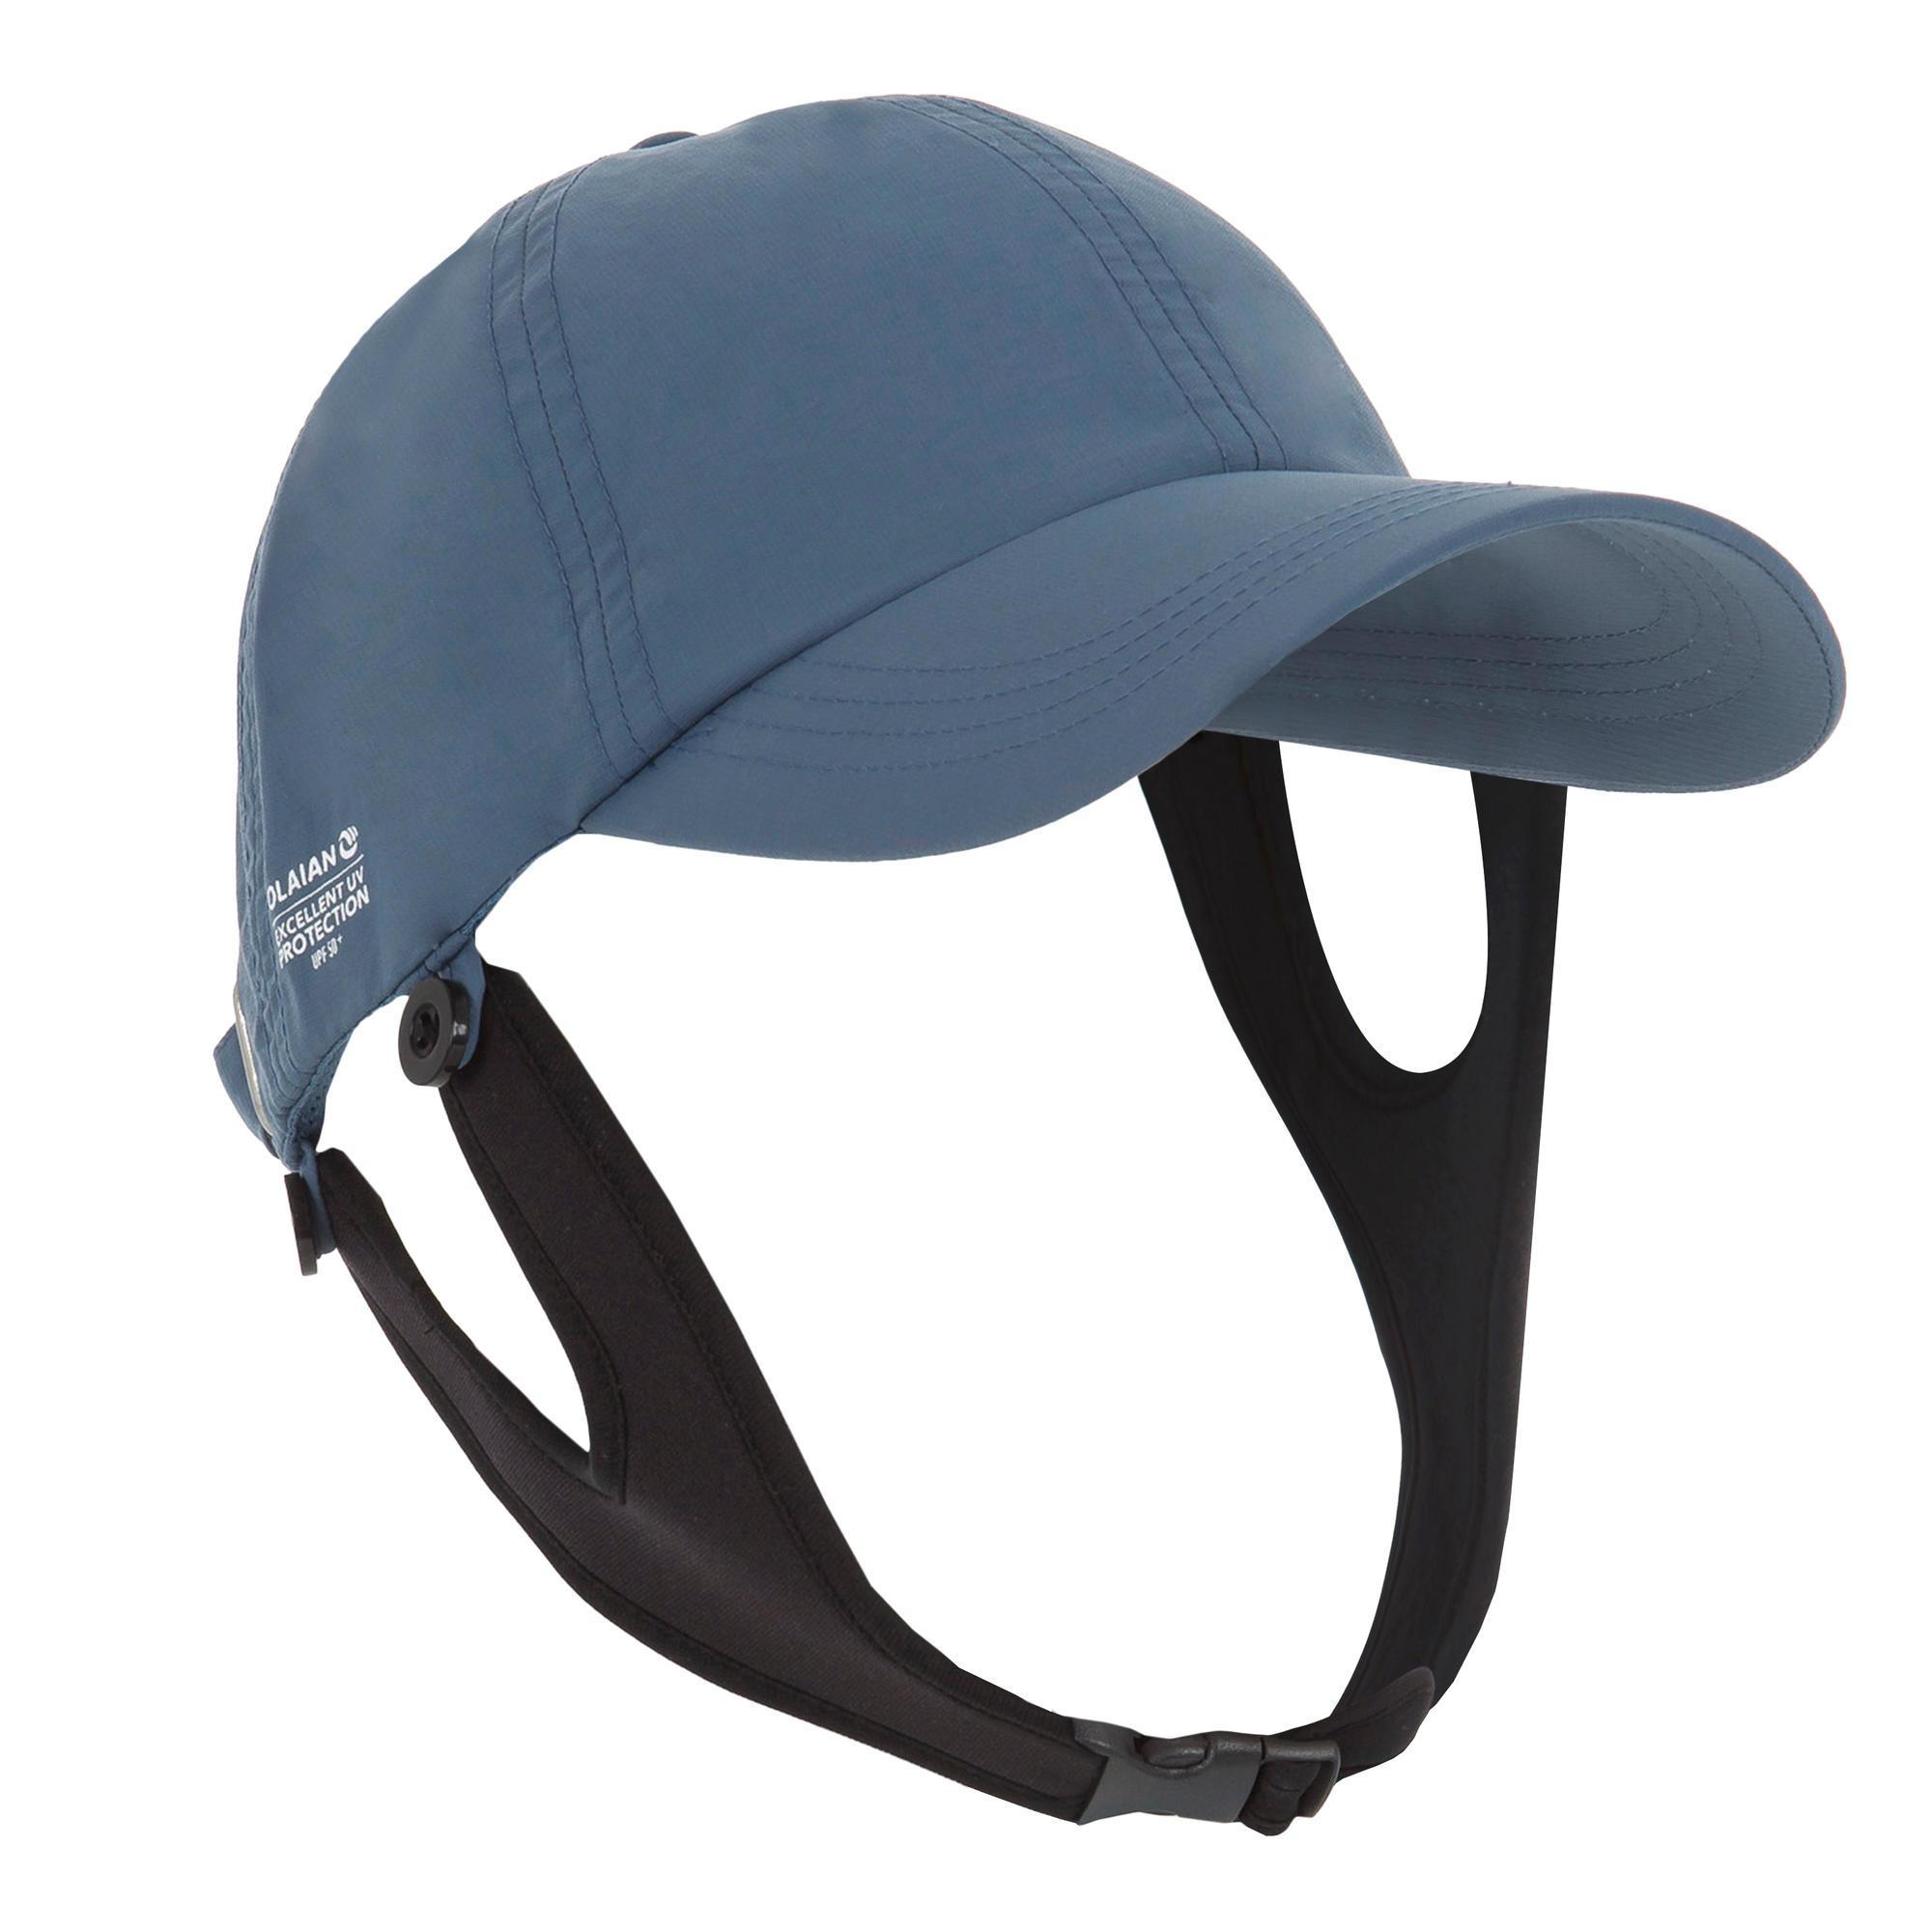 GORRA surf anti-UV adulto Gris Olaian  73fbc7f70b4